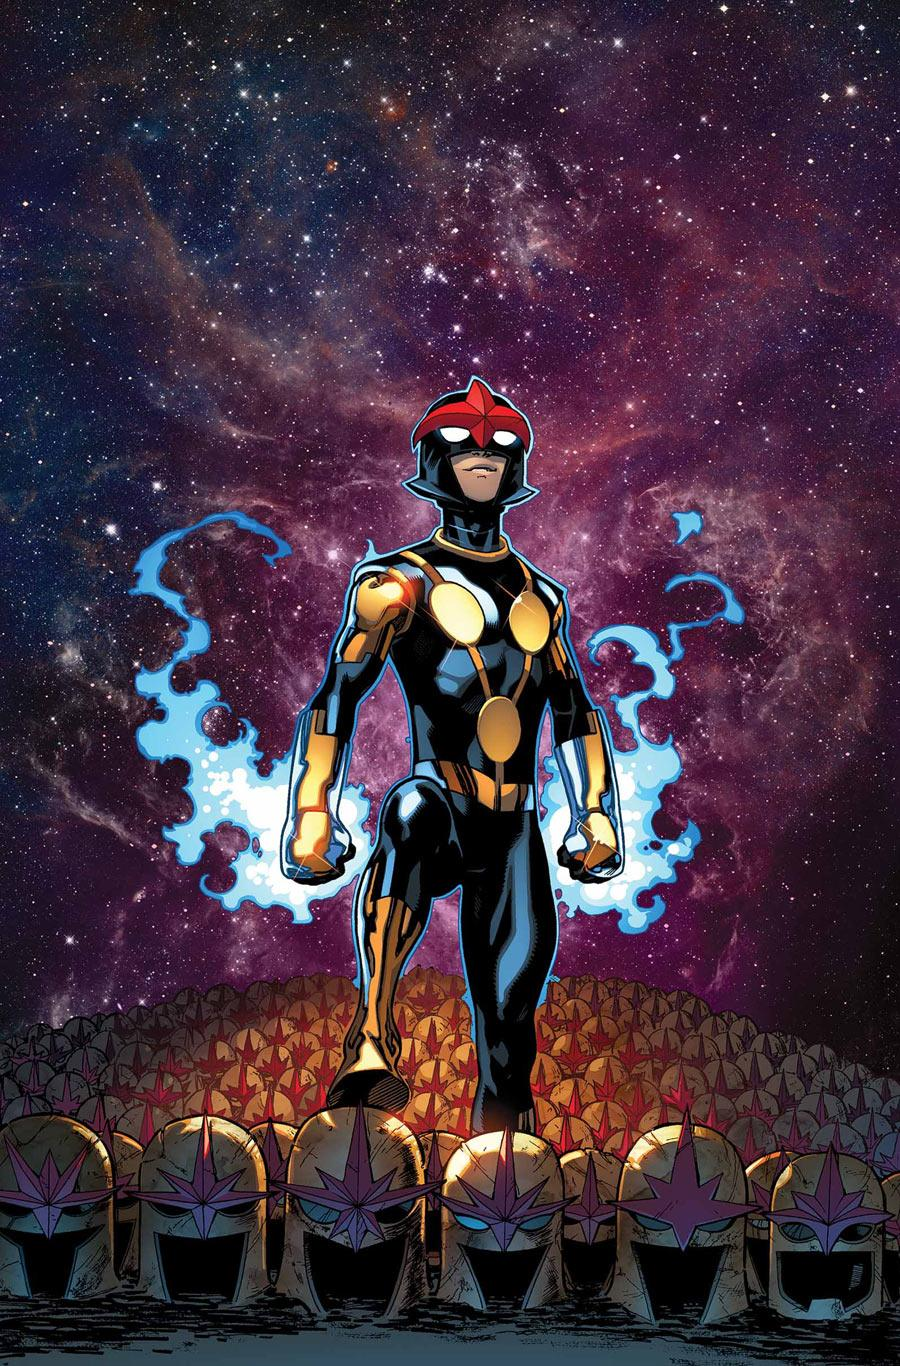 Nova, a Latino character, is helping add diversity to the comic book universe.